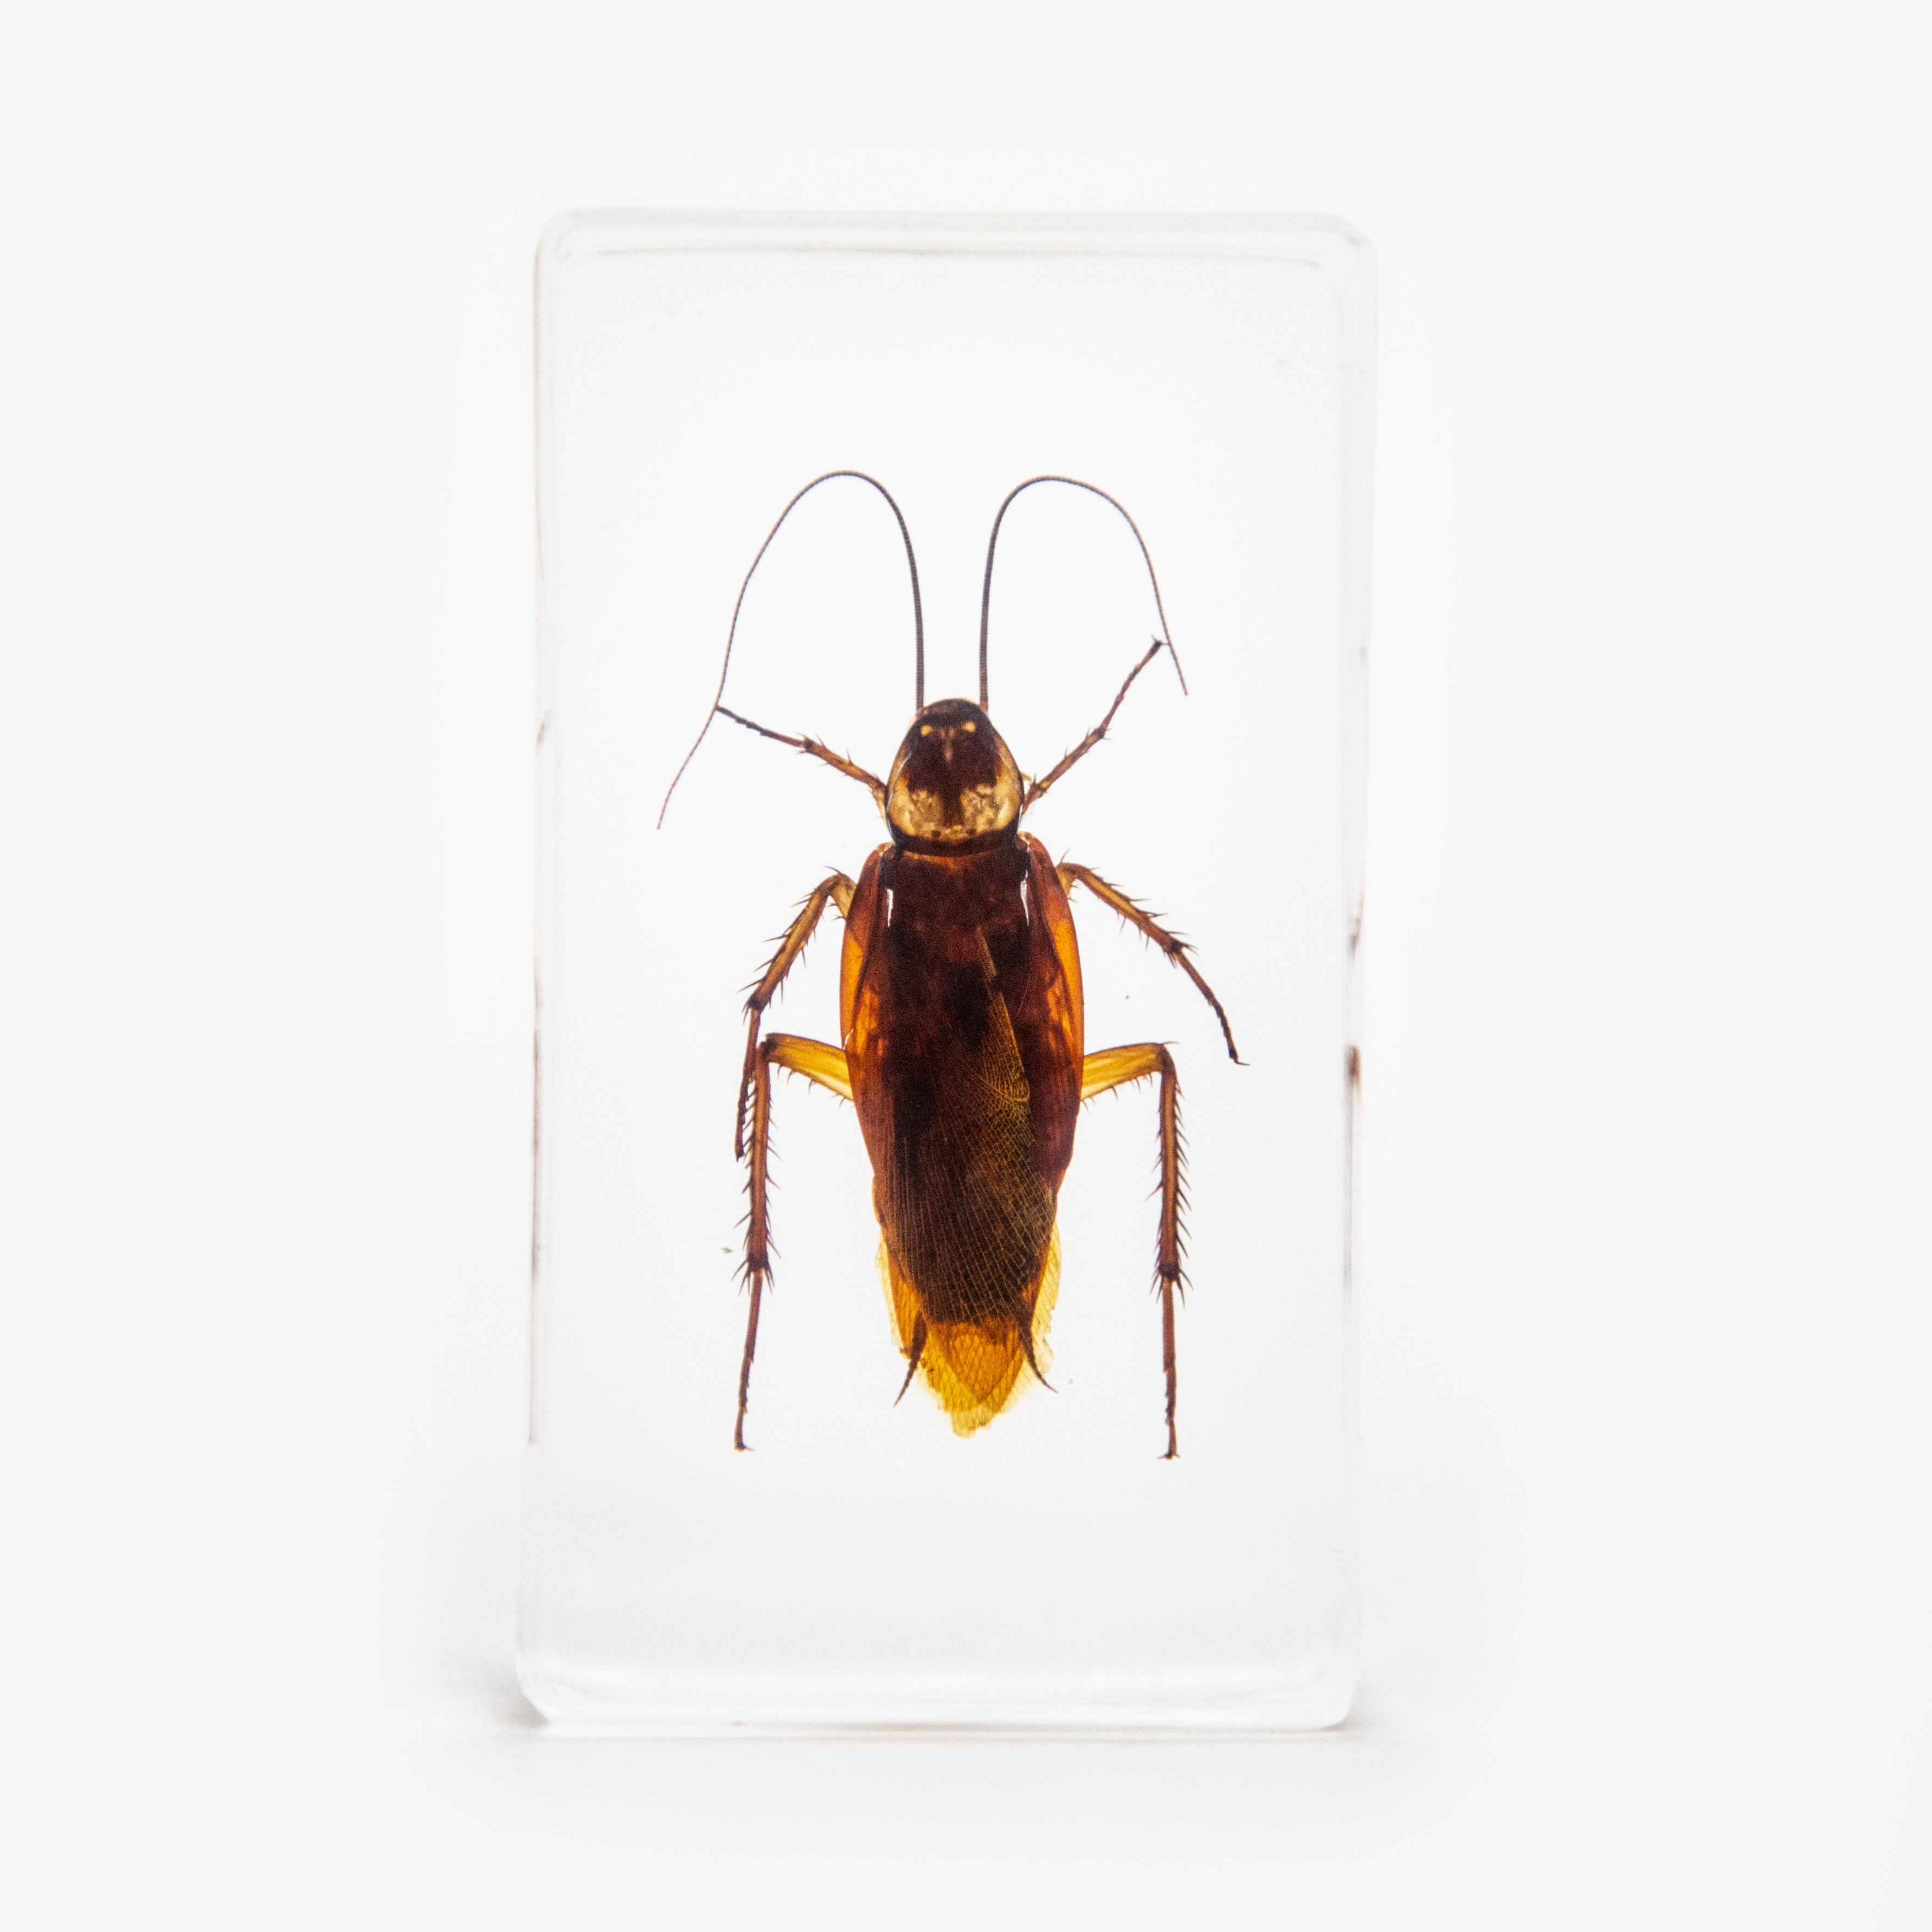 Cockroach Resin Paperweight